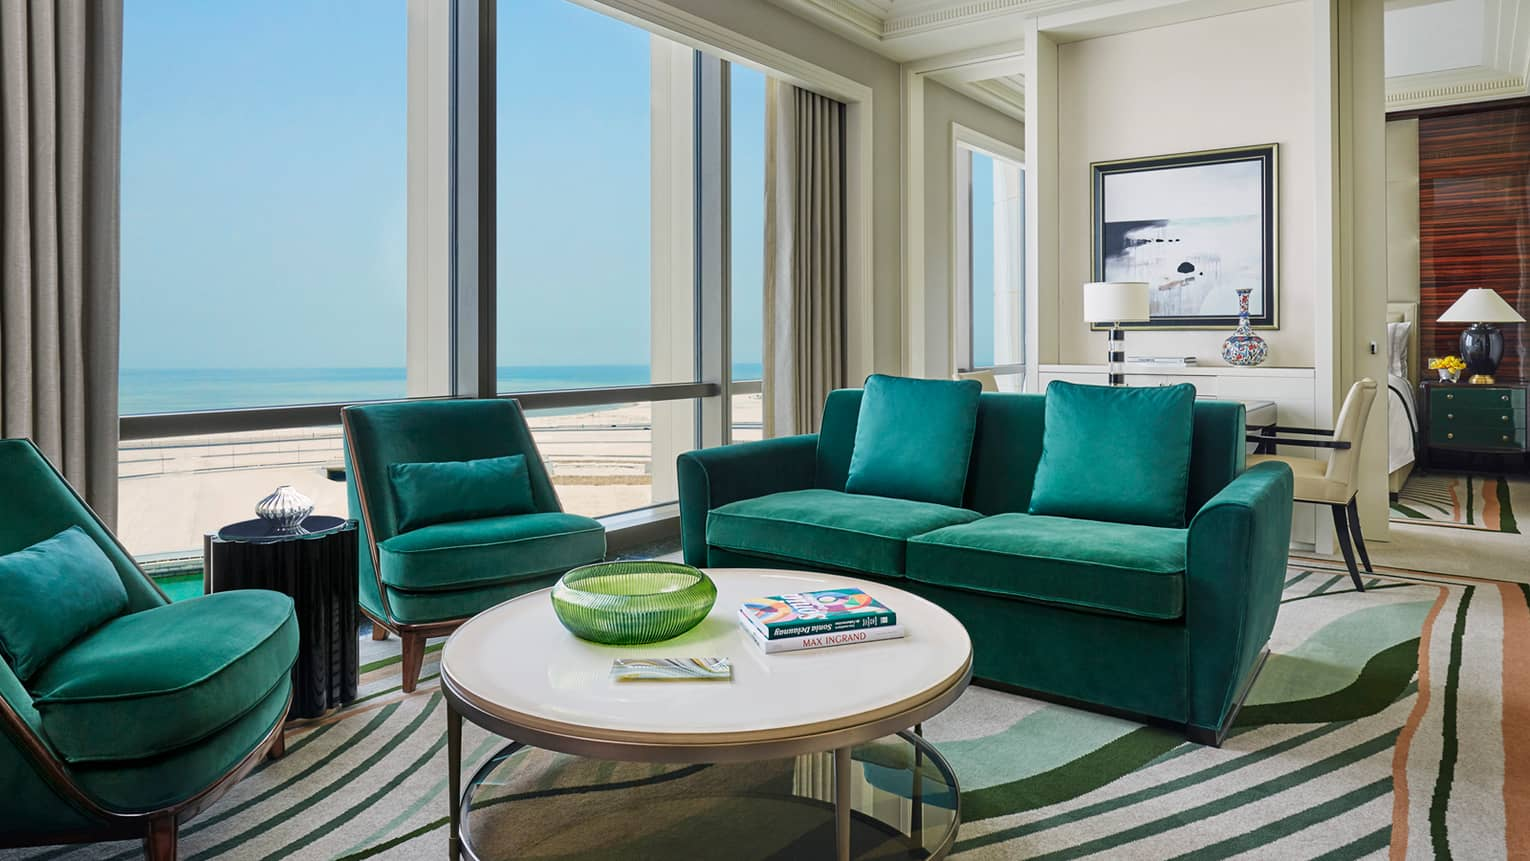 Four Seasons Executive Suite with emerald green velvet sofas, armchairs, round coffee table with books, sunny windows